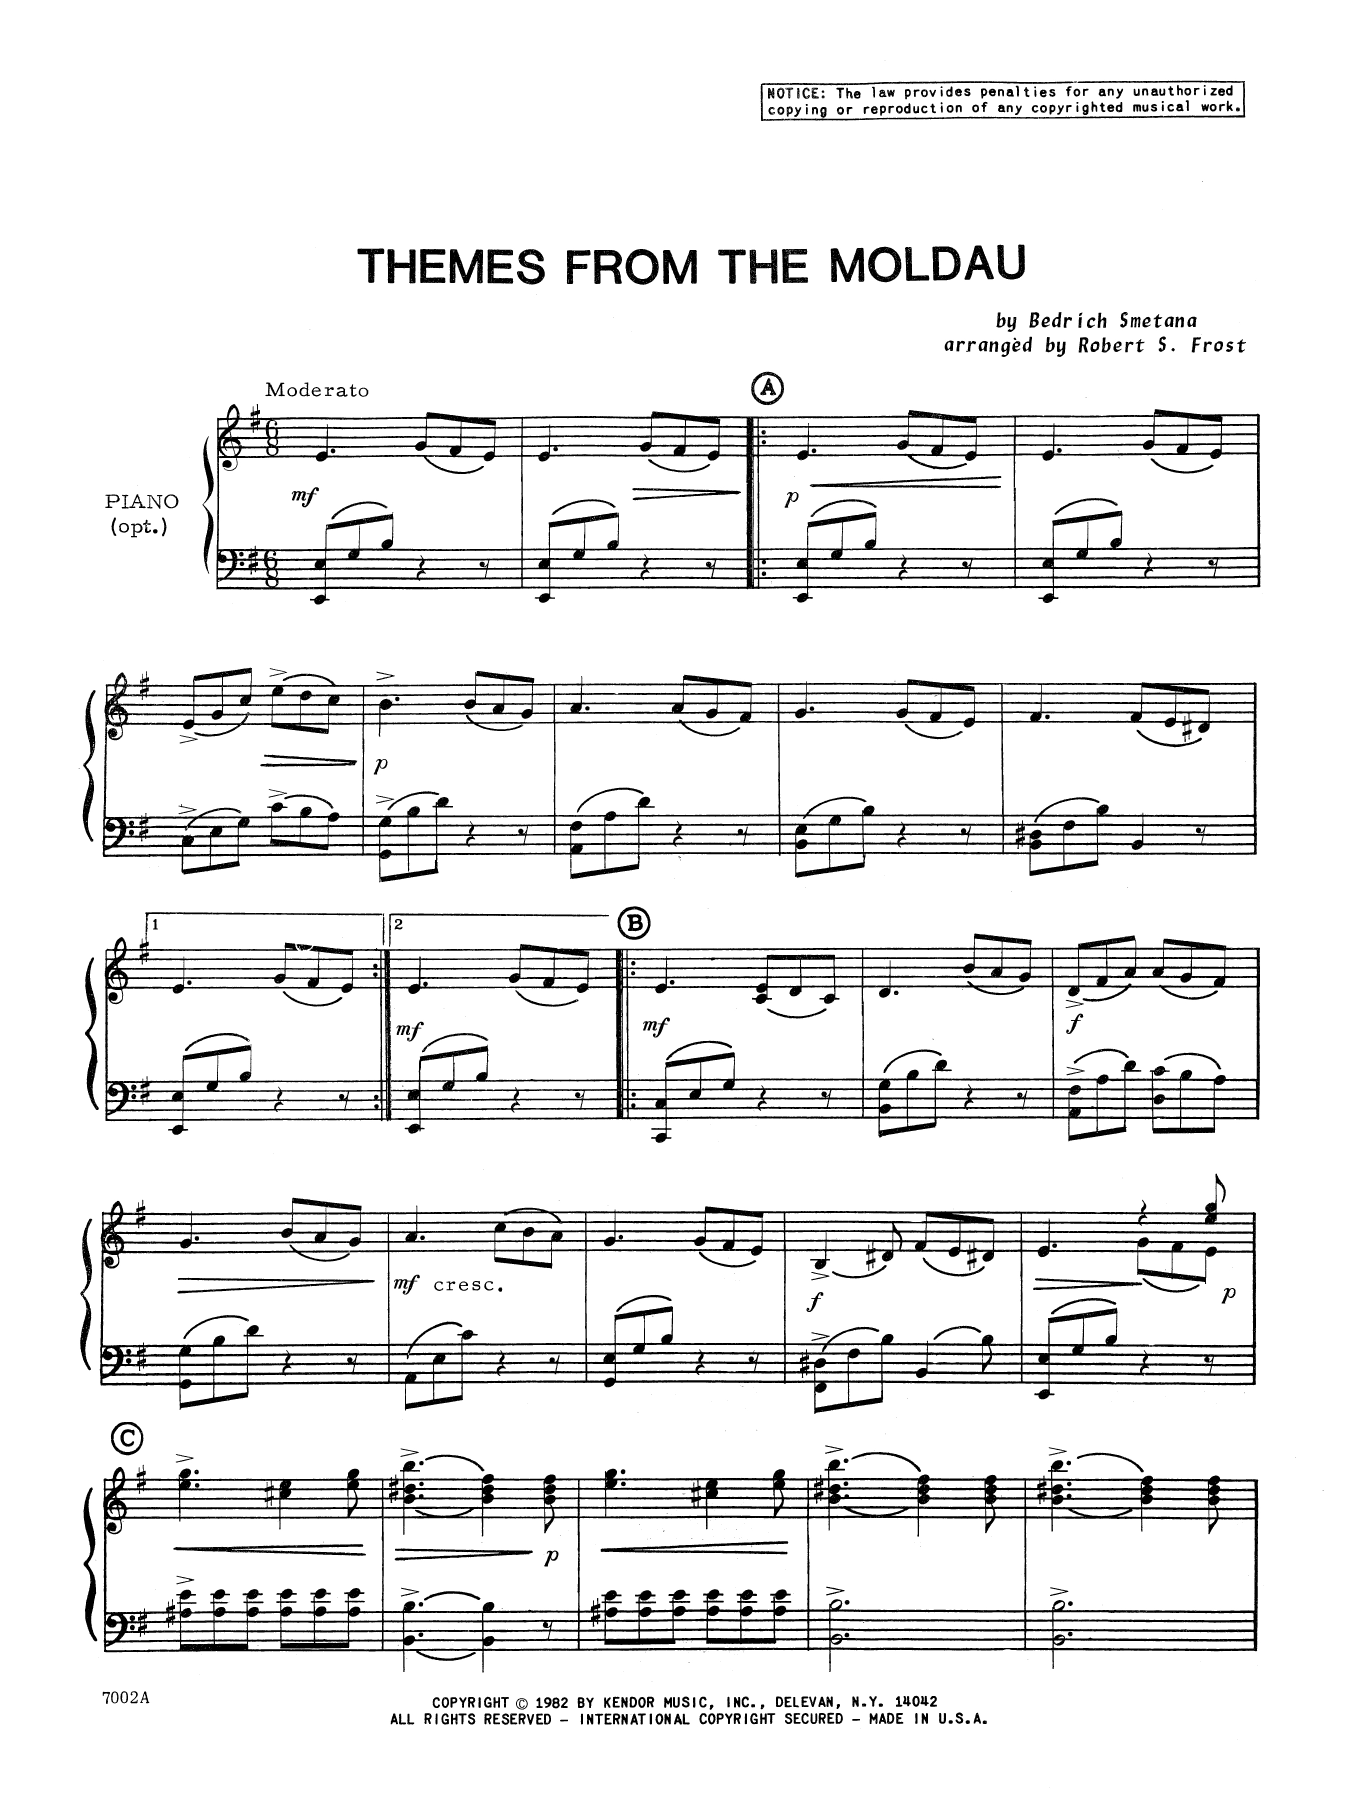 Smetana - Themes From The Moldau - Piano Accompaniment